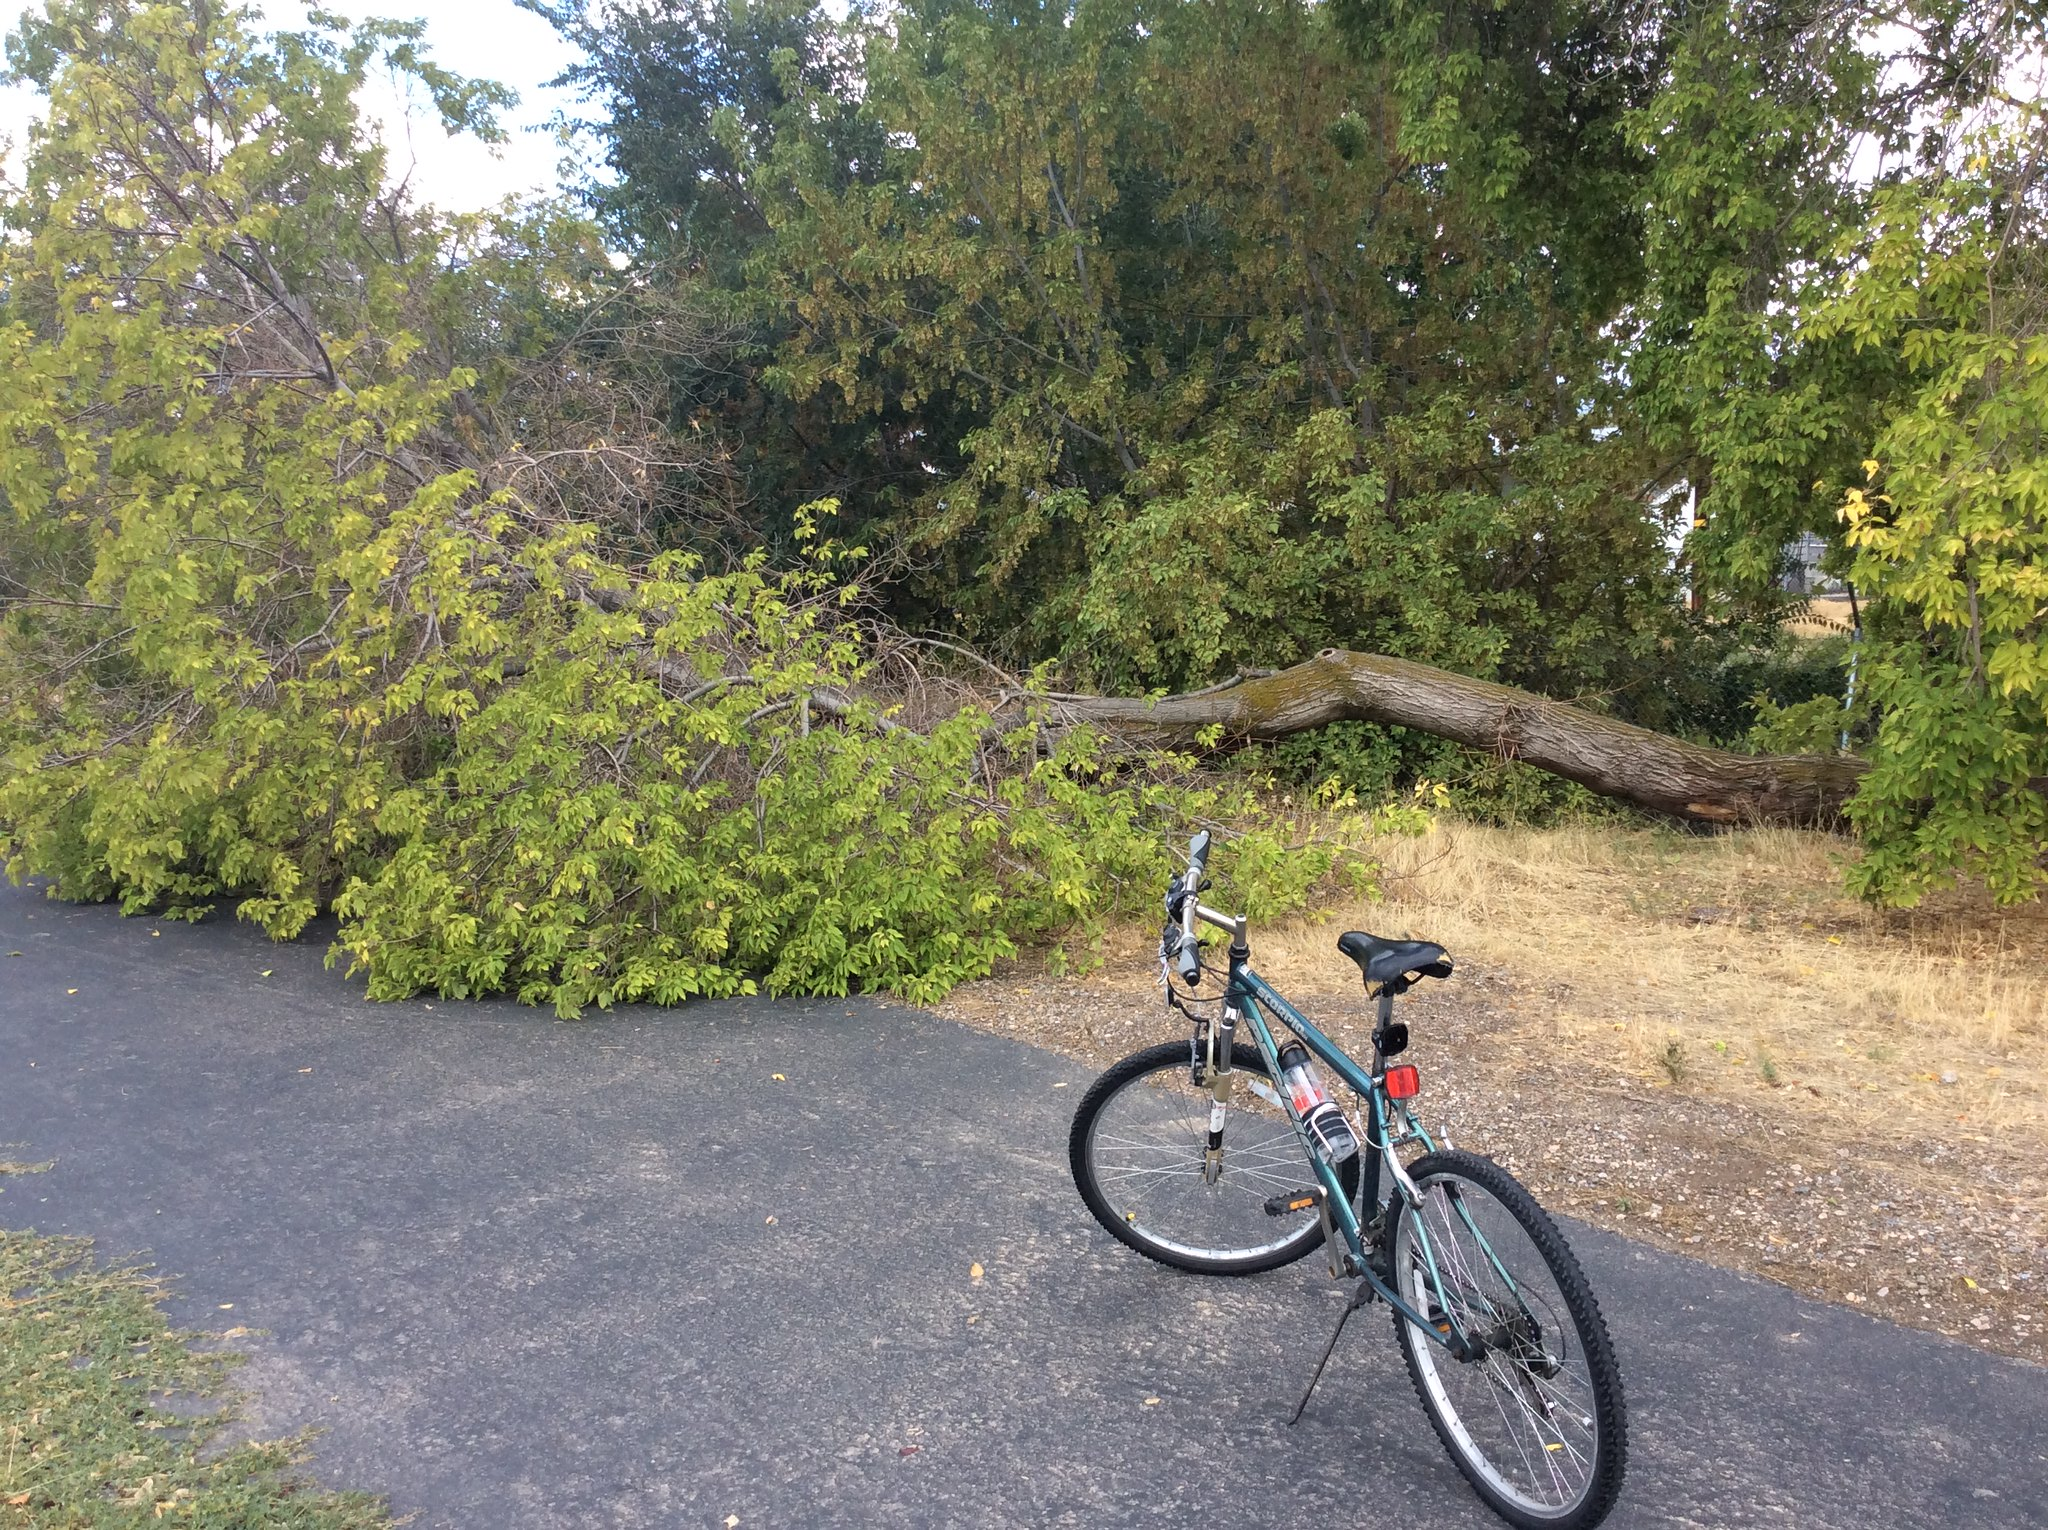 This tree fell on our bike path during the storm